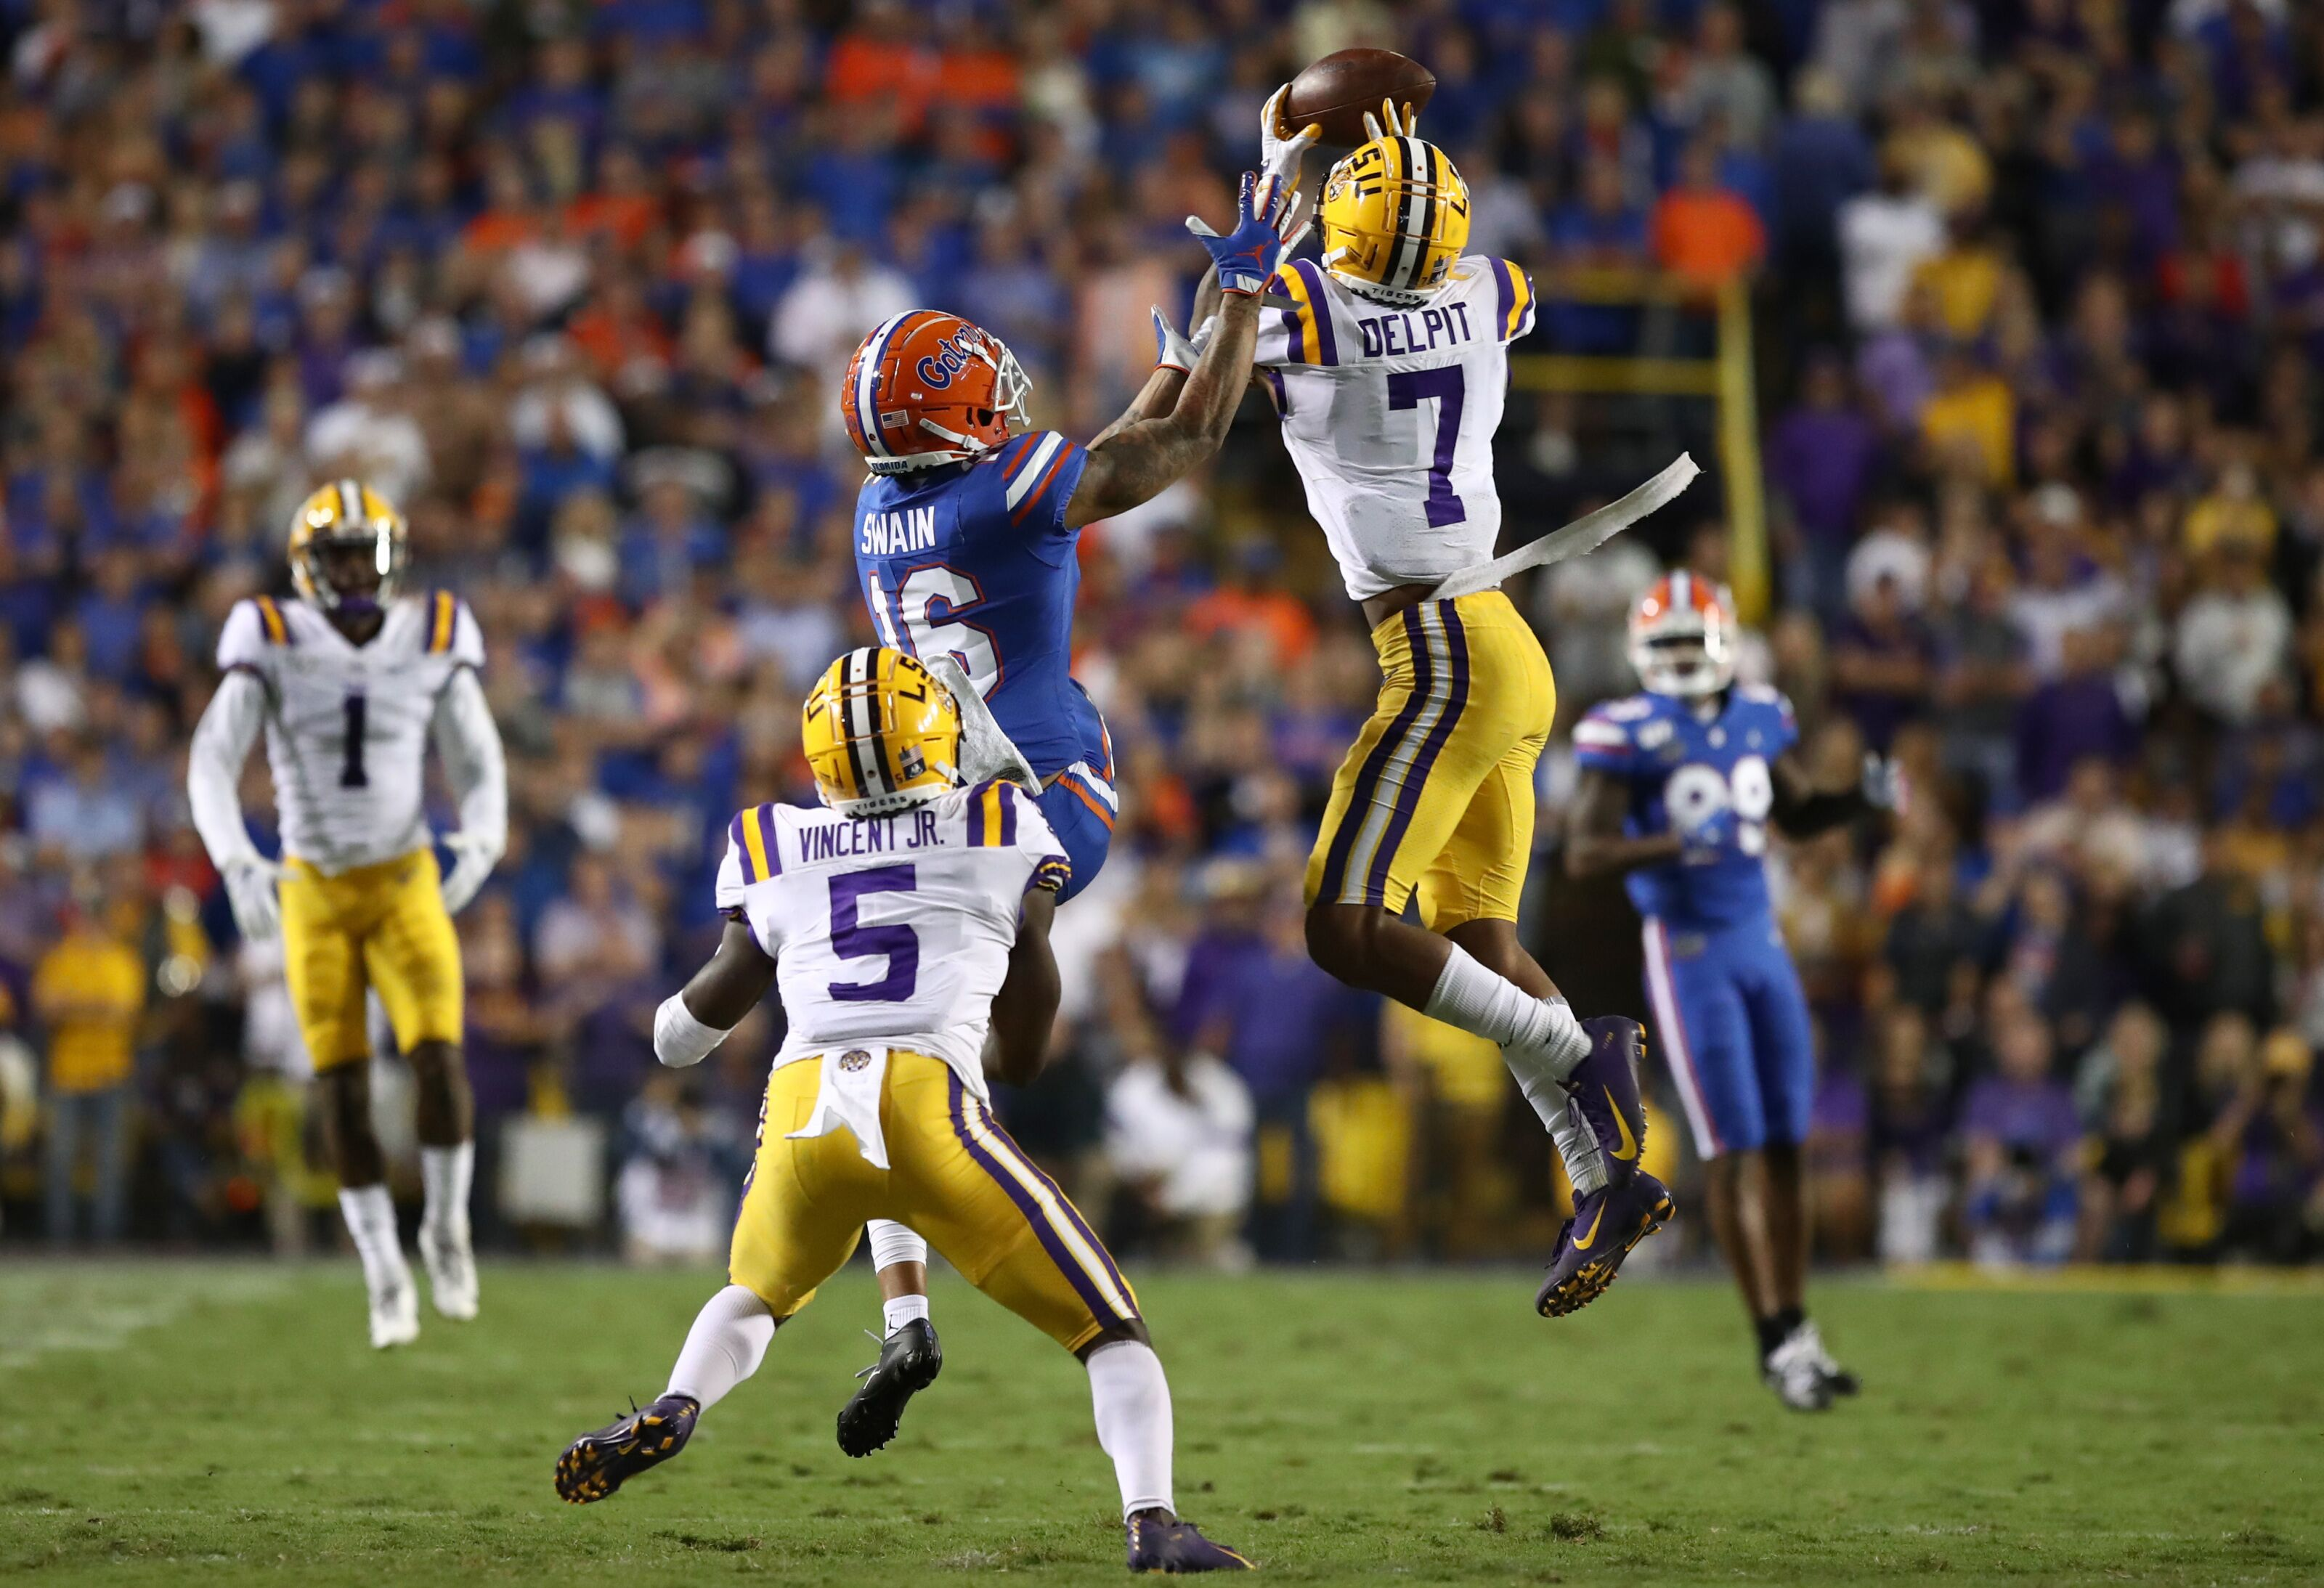 Breaking down Grant Delpit's performance against Florida